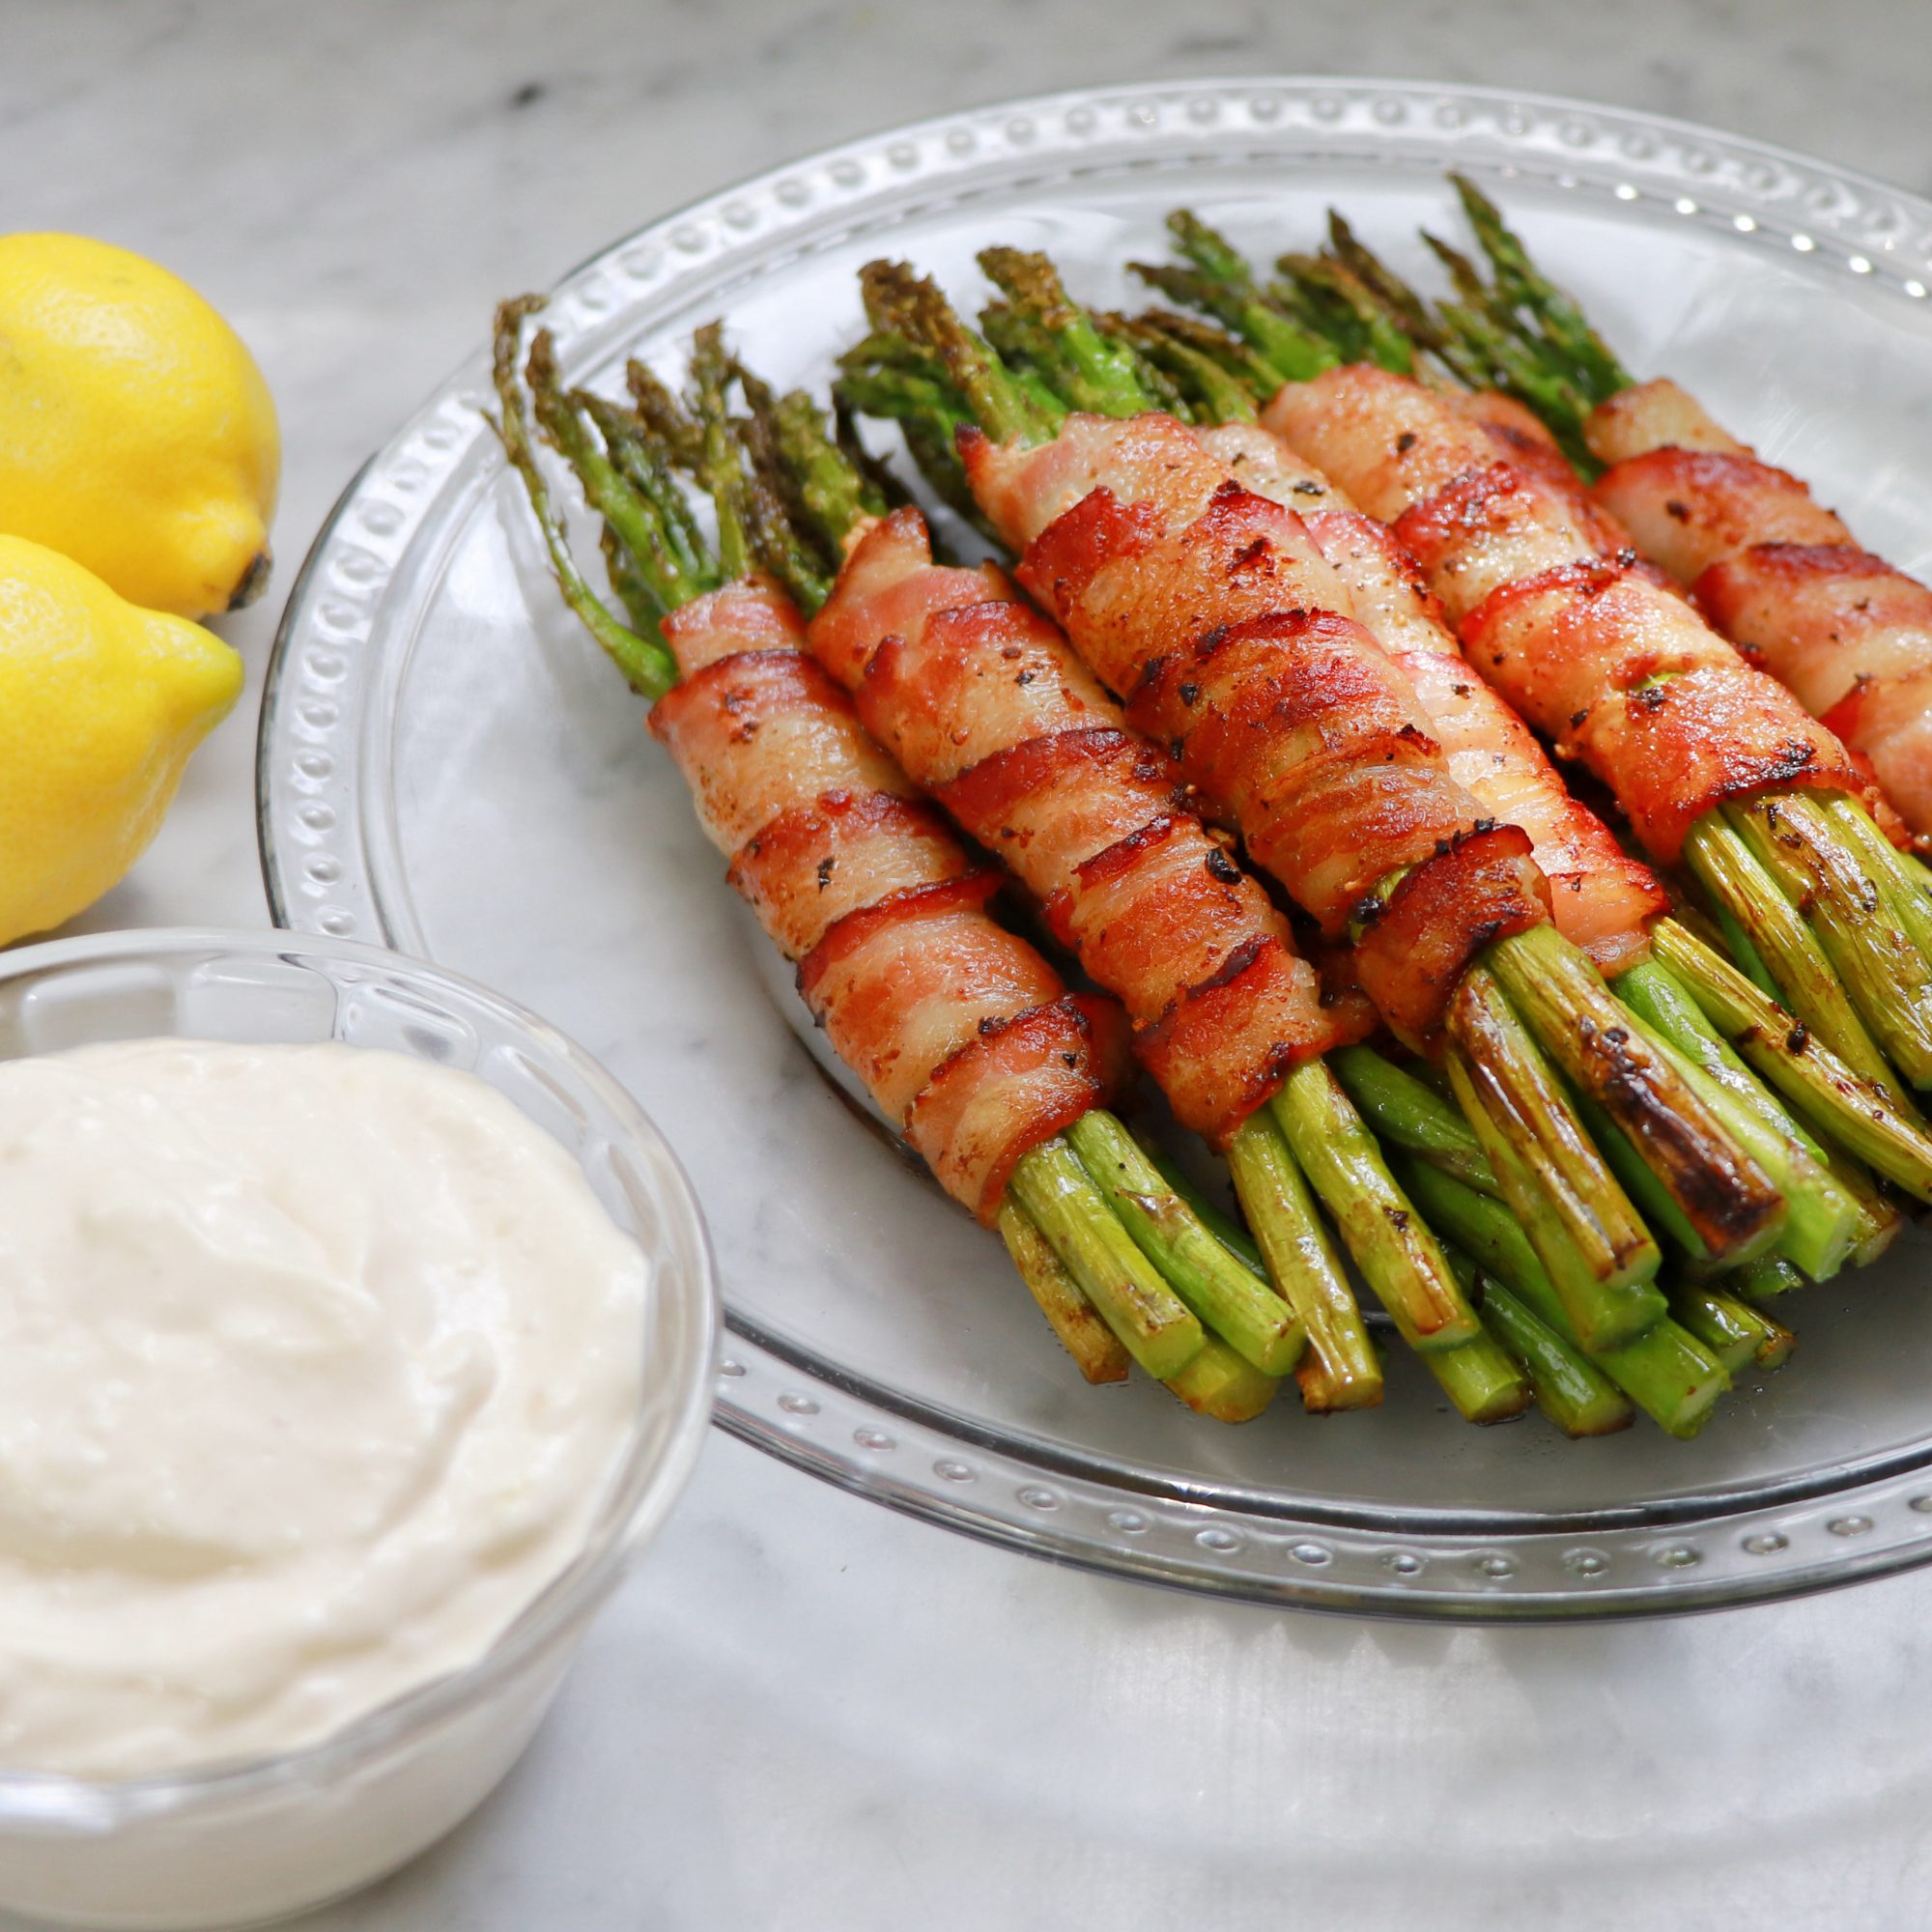 Keto Bacon-Wrapped Asparagus with Lemon Aioli